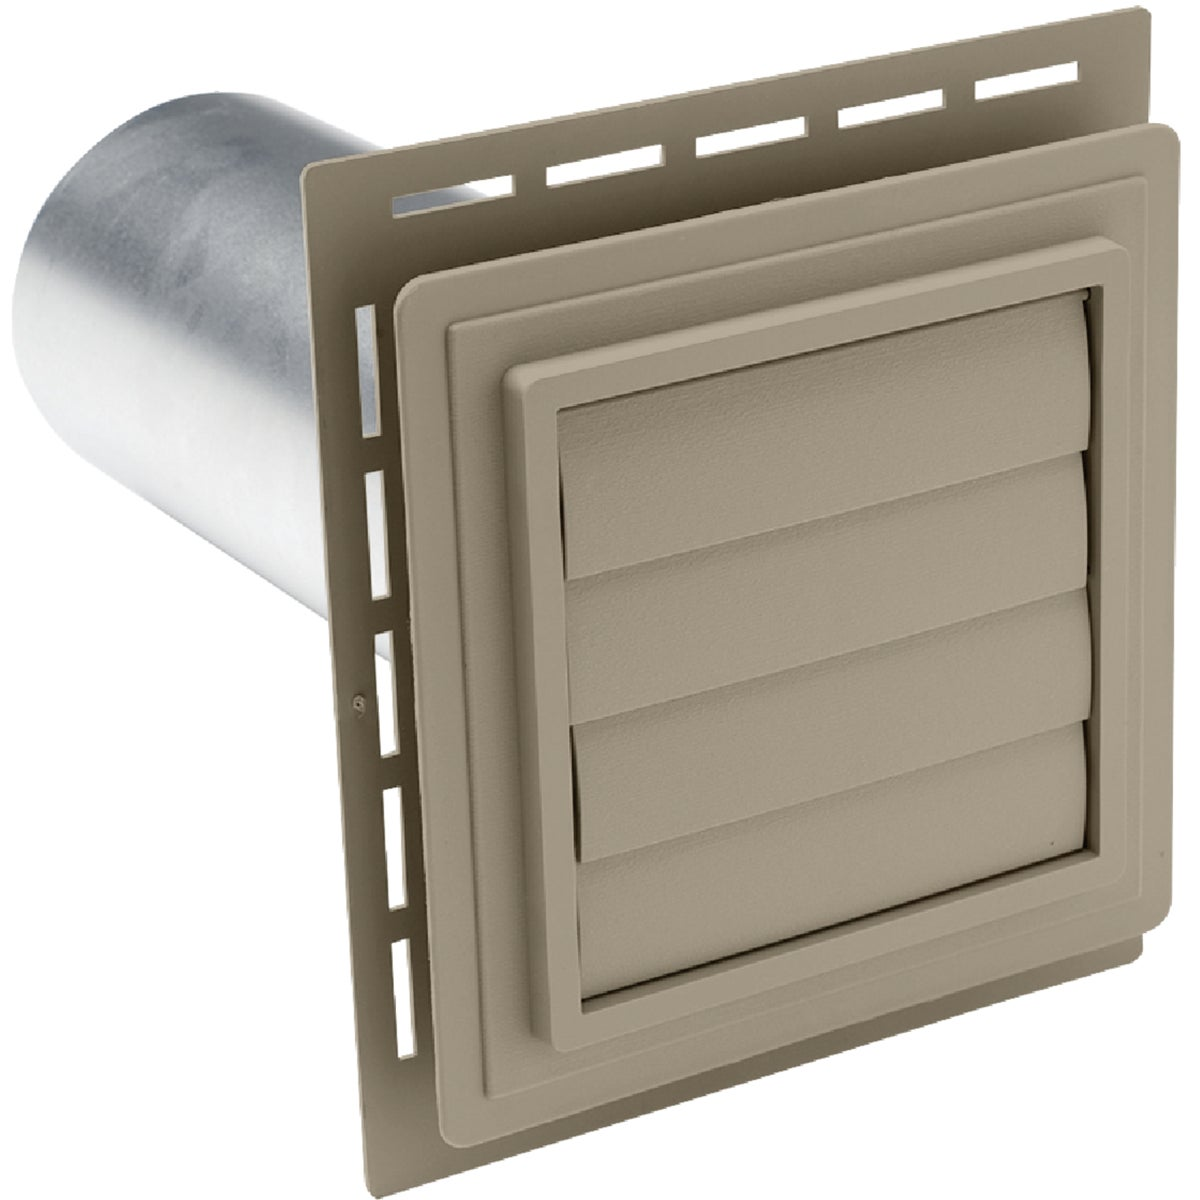 CLAY EXHAUST VENT - EXVENT PC by Alcoa Home Exteriors